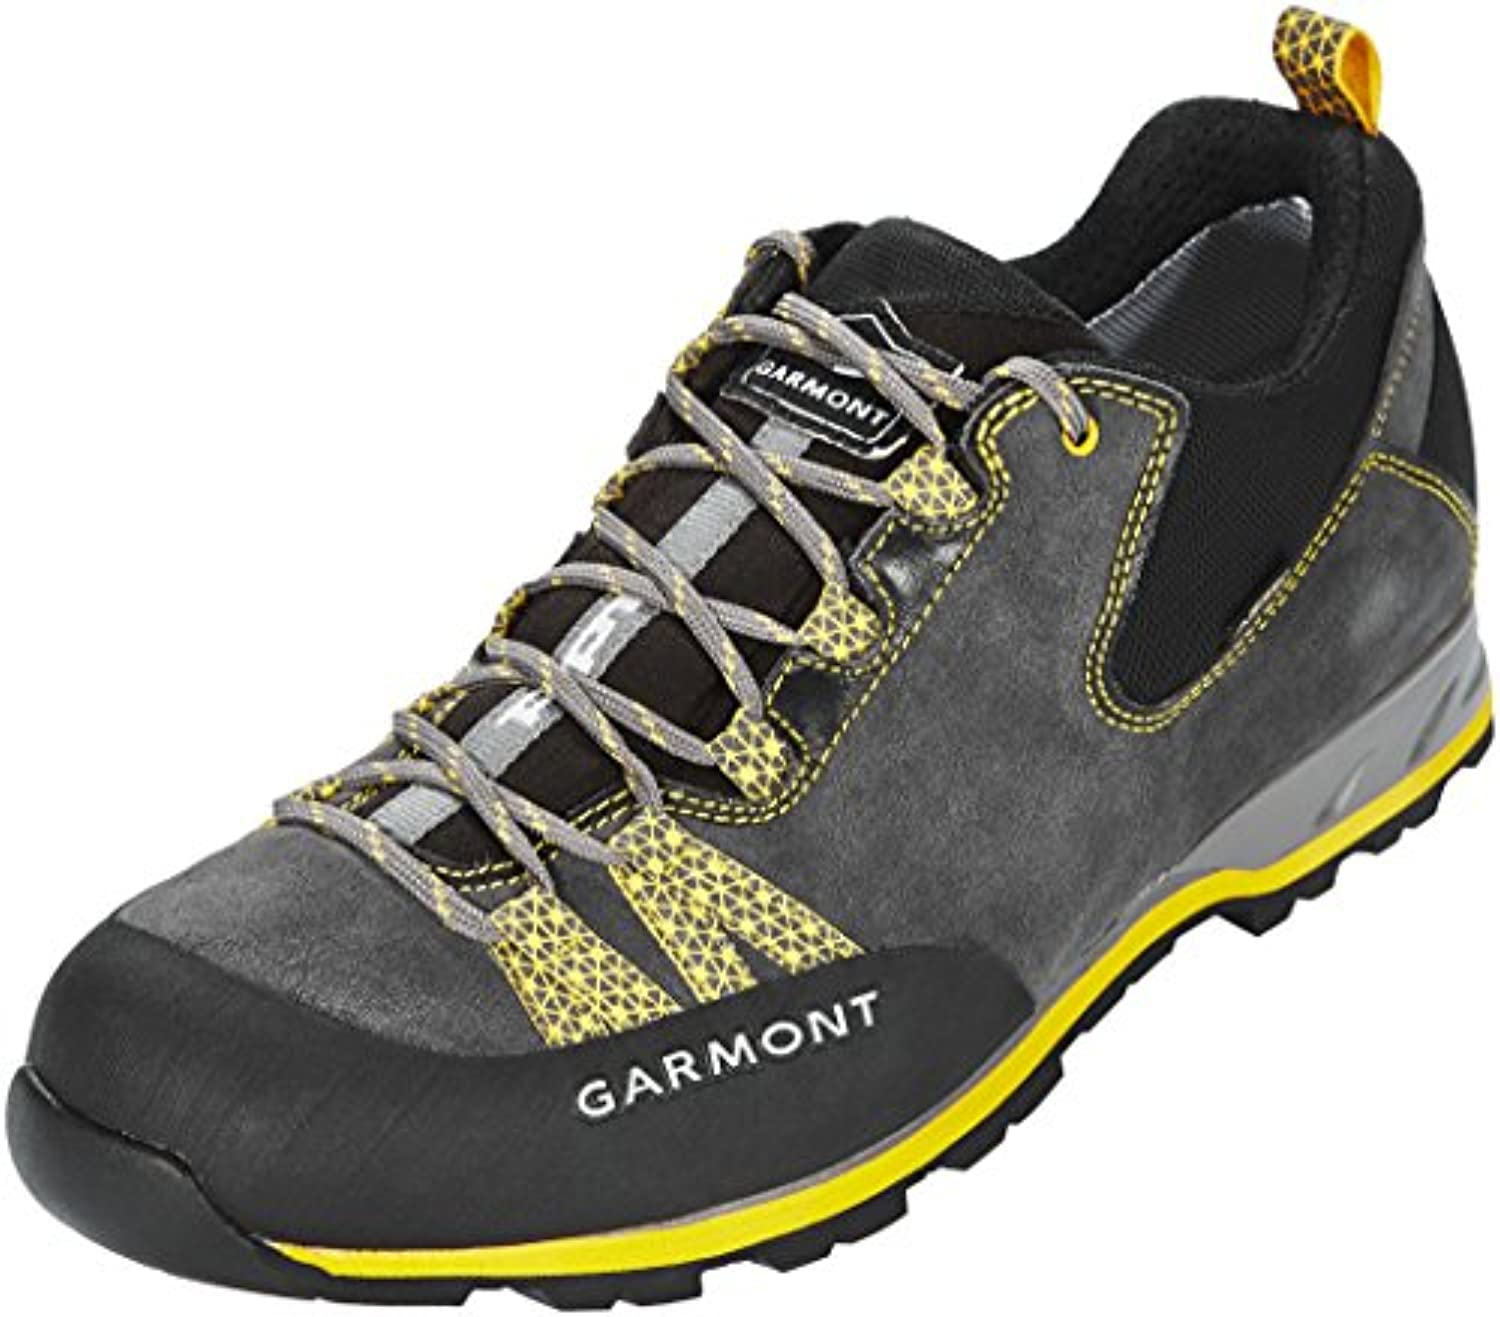 Garmont Mystic Low II GTX Shoes Men Dark Grey/Yellow Schuhgröße UK 10 5 | EU 45 2018 Schuhe